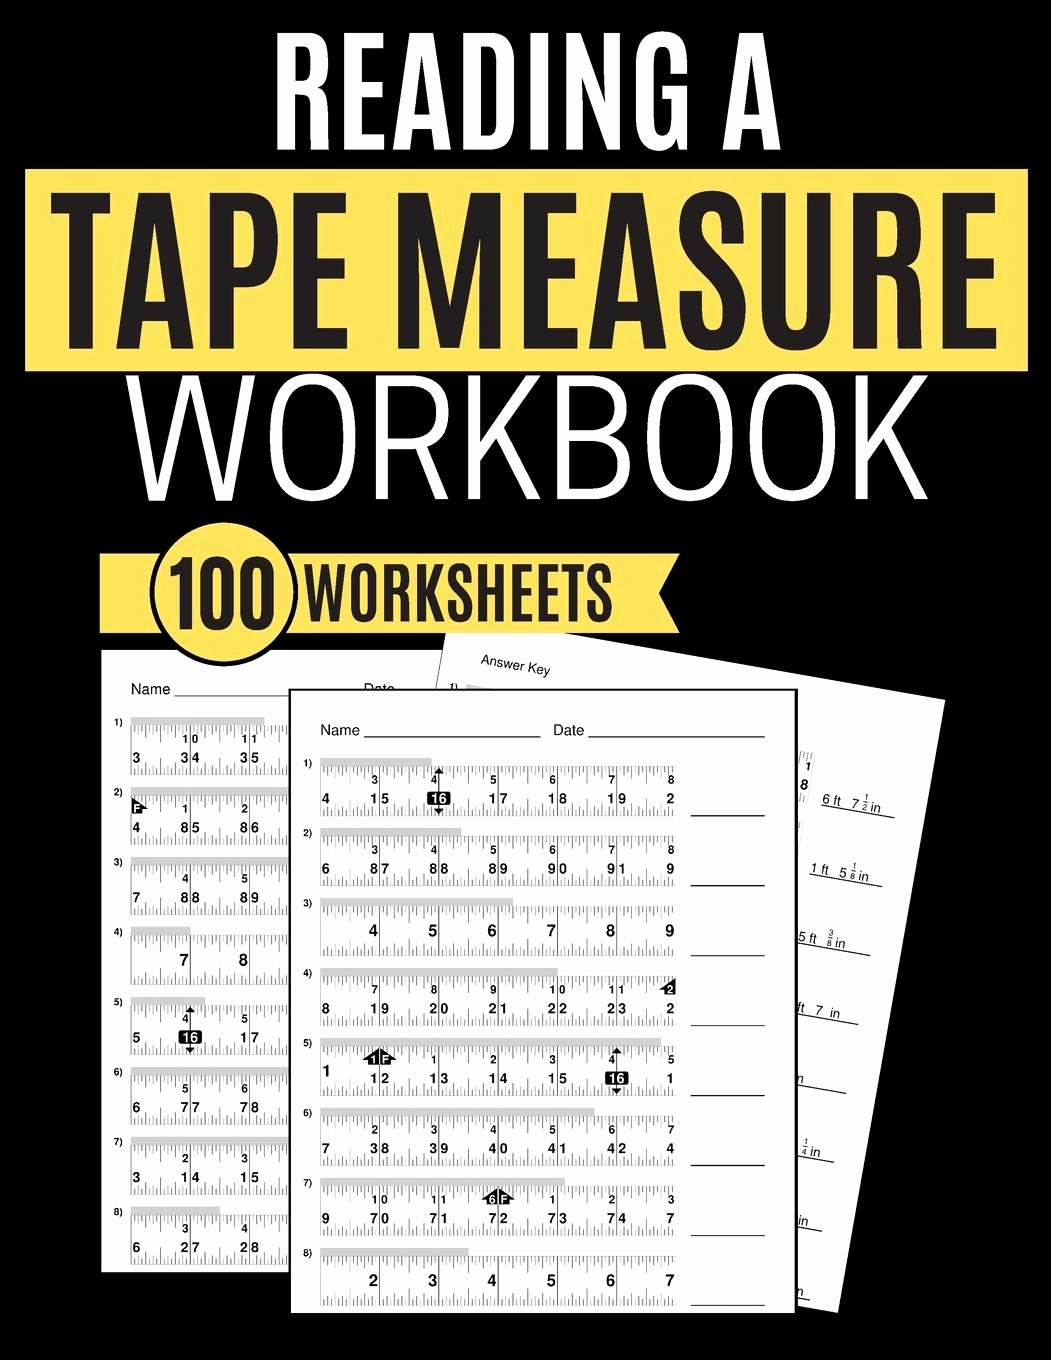 Reading A Tape Measure Worksheet Ideas Reading A Tape Measure Workbook 100 Worksheets Learning